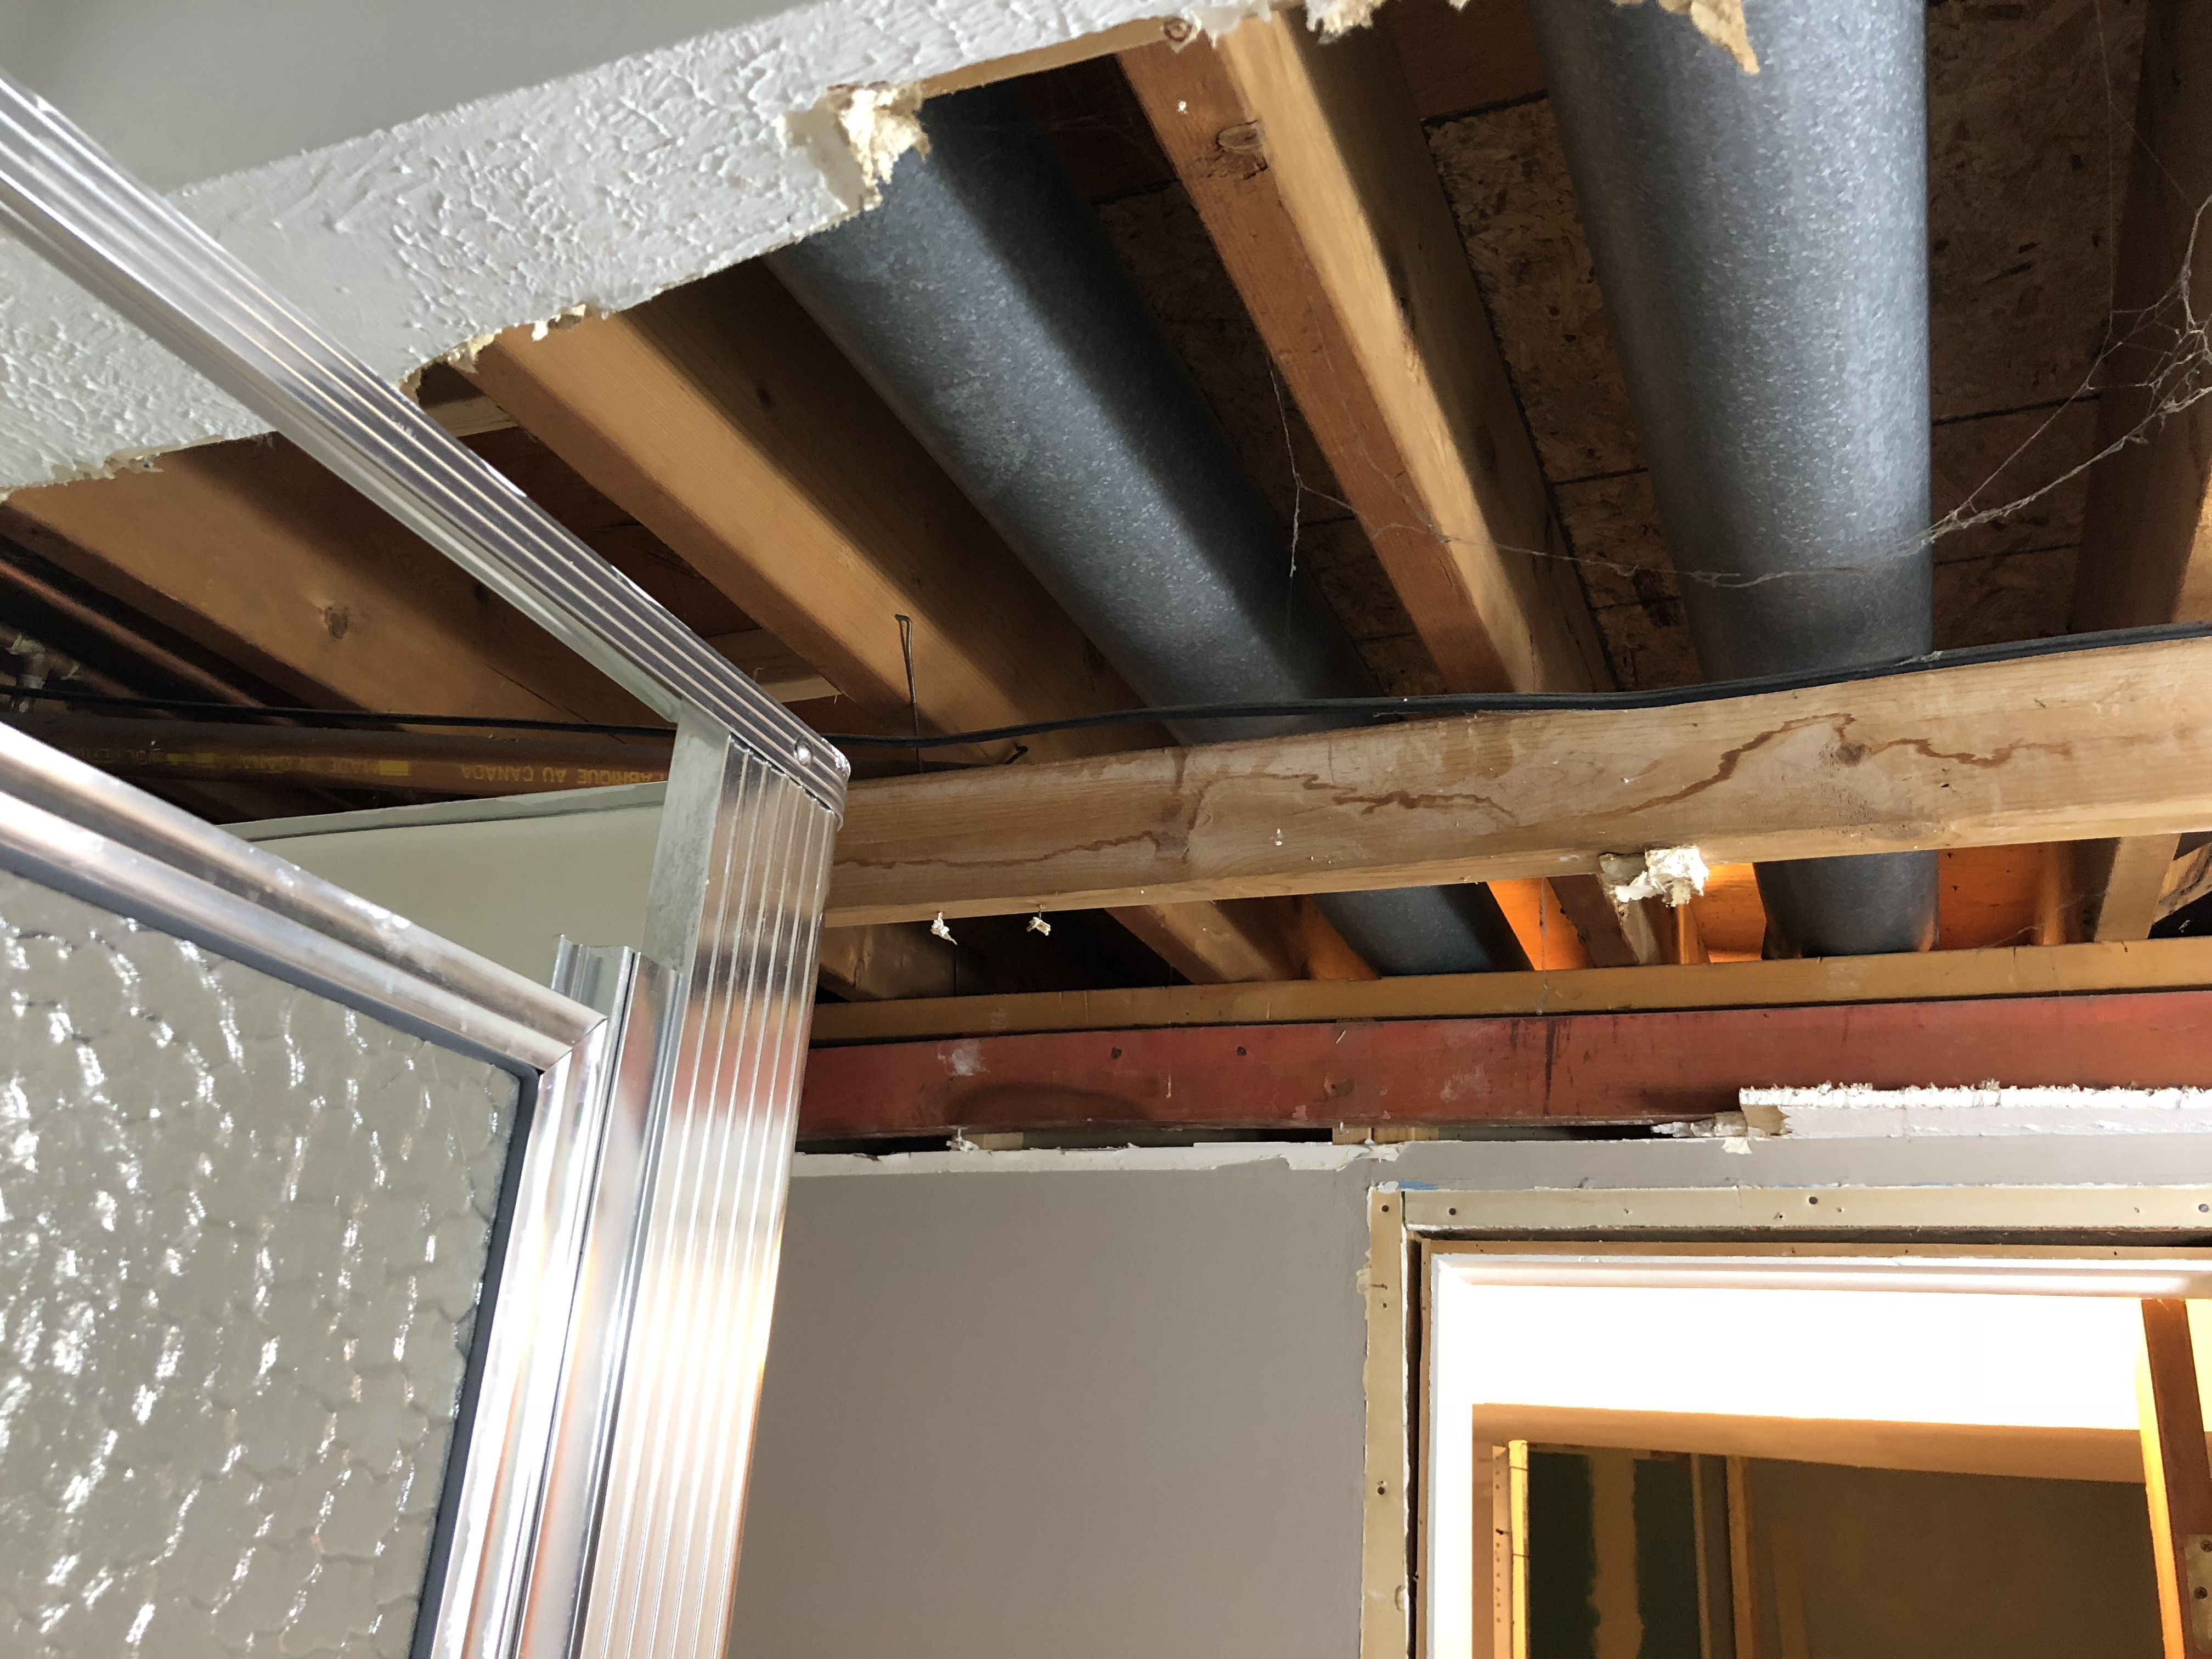 Basement Bathroom Ceiling We Had To Remove The Ceiling In Order To - How to fix bathroom ceiling